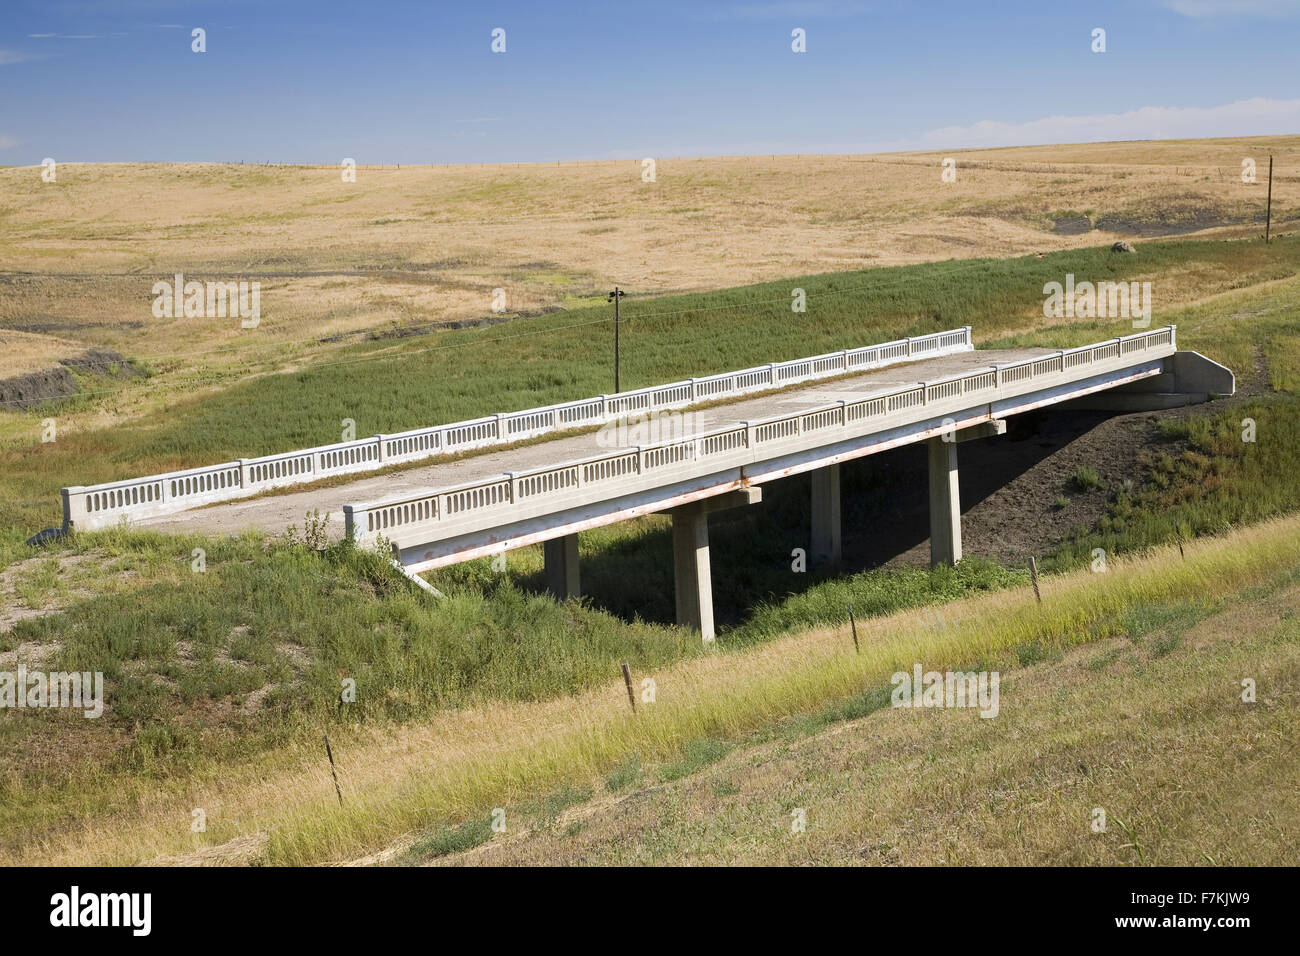 Old bridge and vestiges of Lincoln Highway, US 30, America's first transcontinental highway, Nebraska - Stock Image